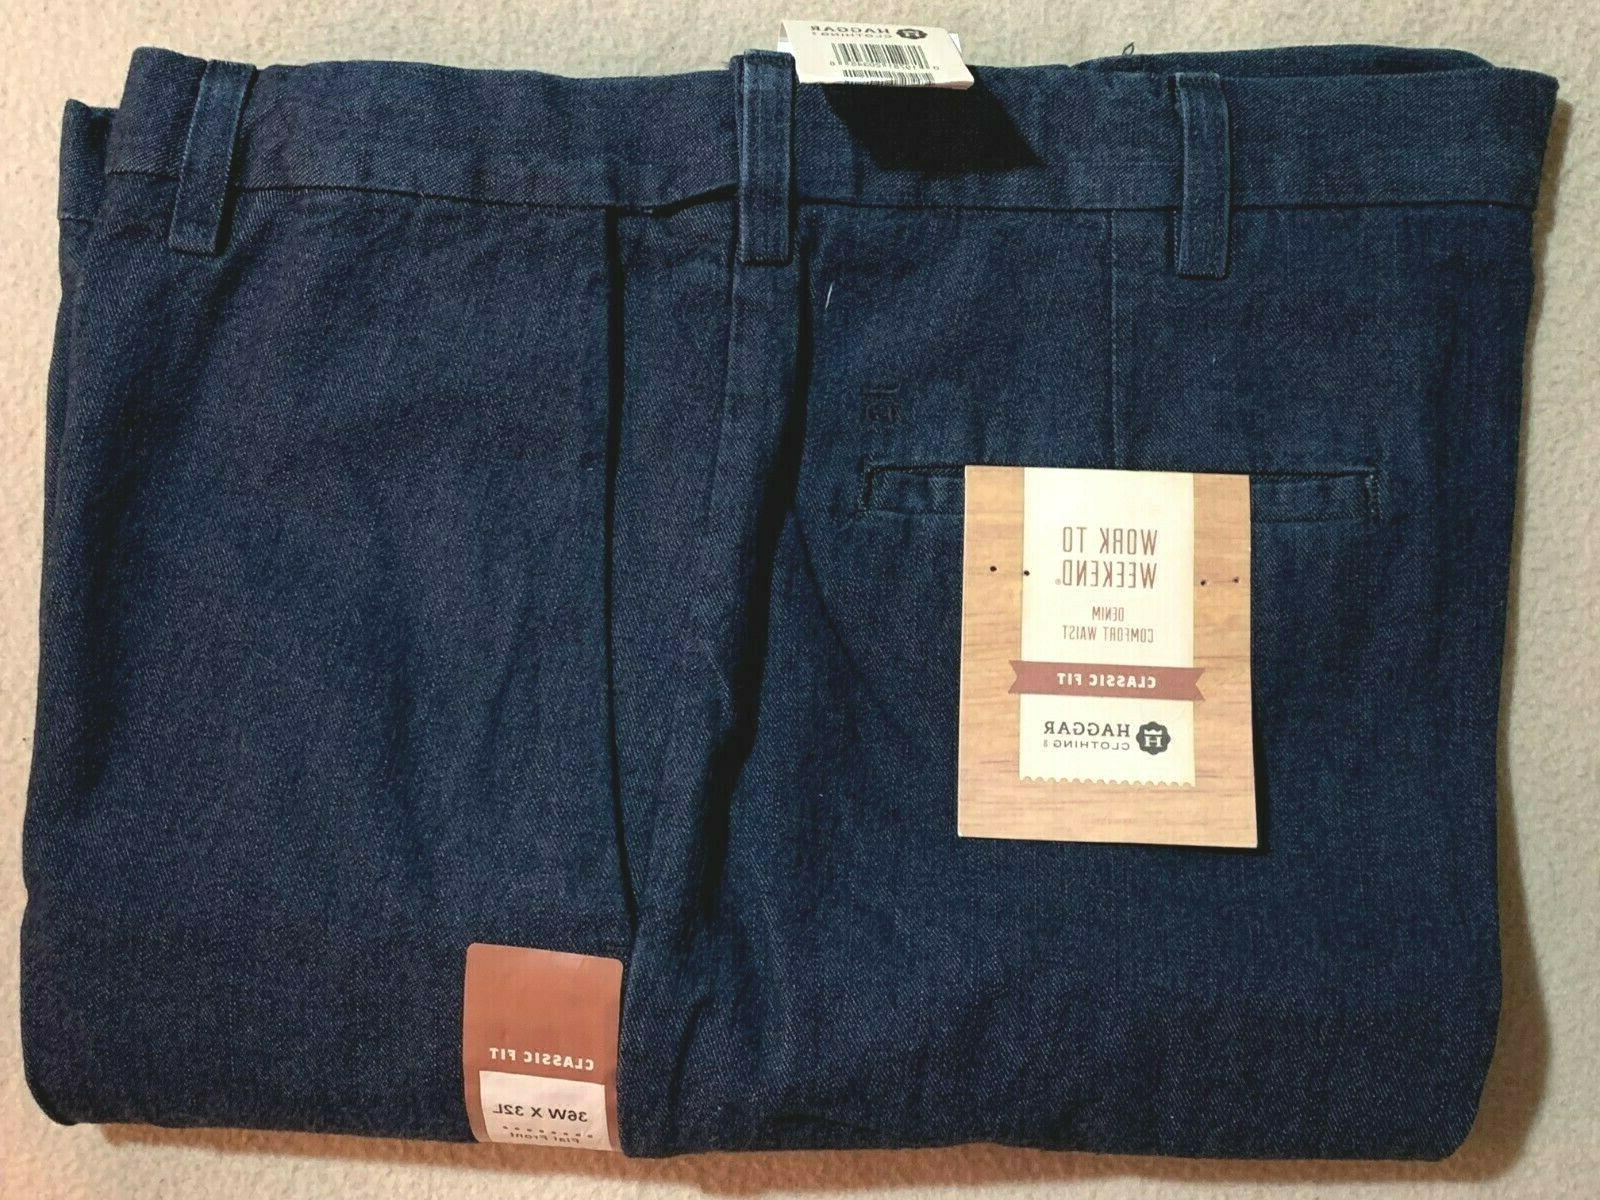 size 36 x 32 jeans trousers denim